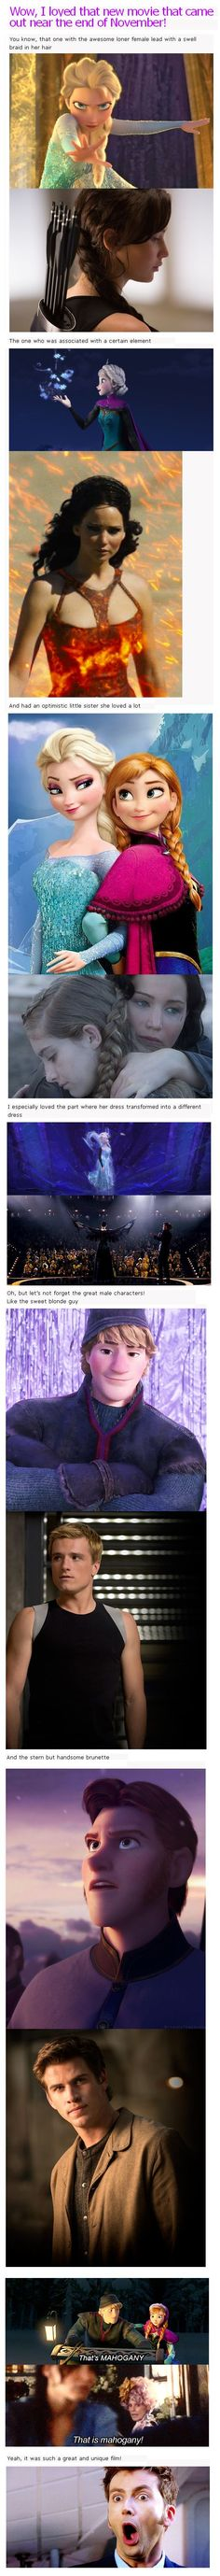 The hunger games and frozen!!! OMG